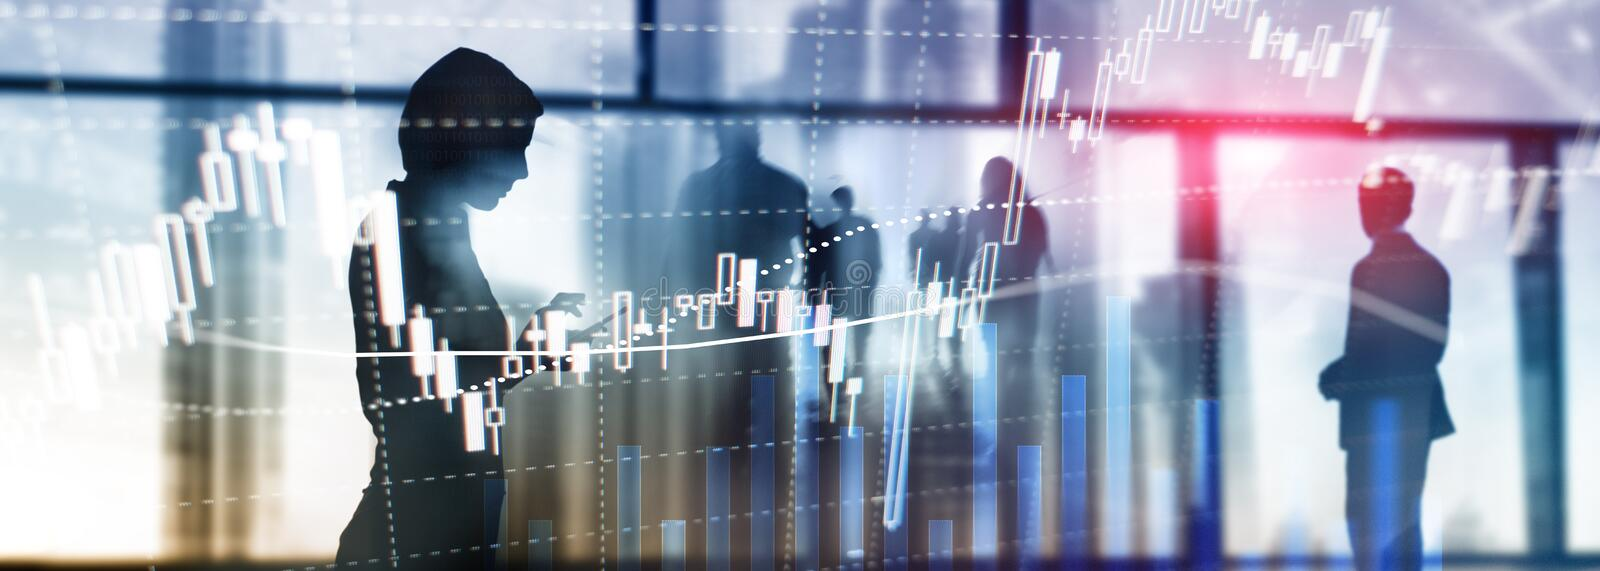 Forex trading, Financial market, Investment concept on business center background.  royalty free stock photo